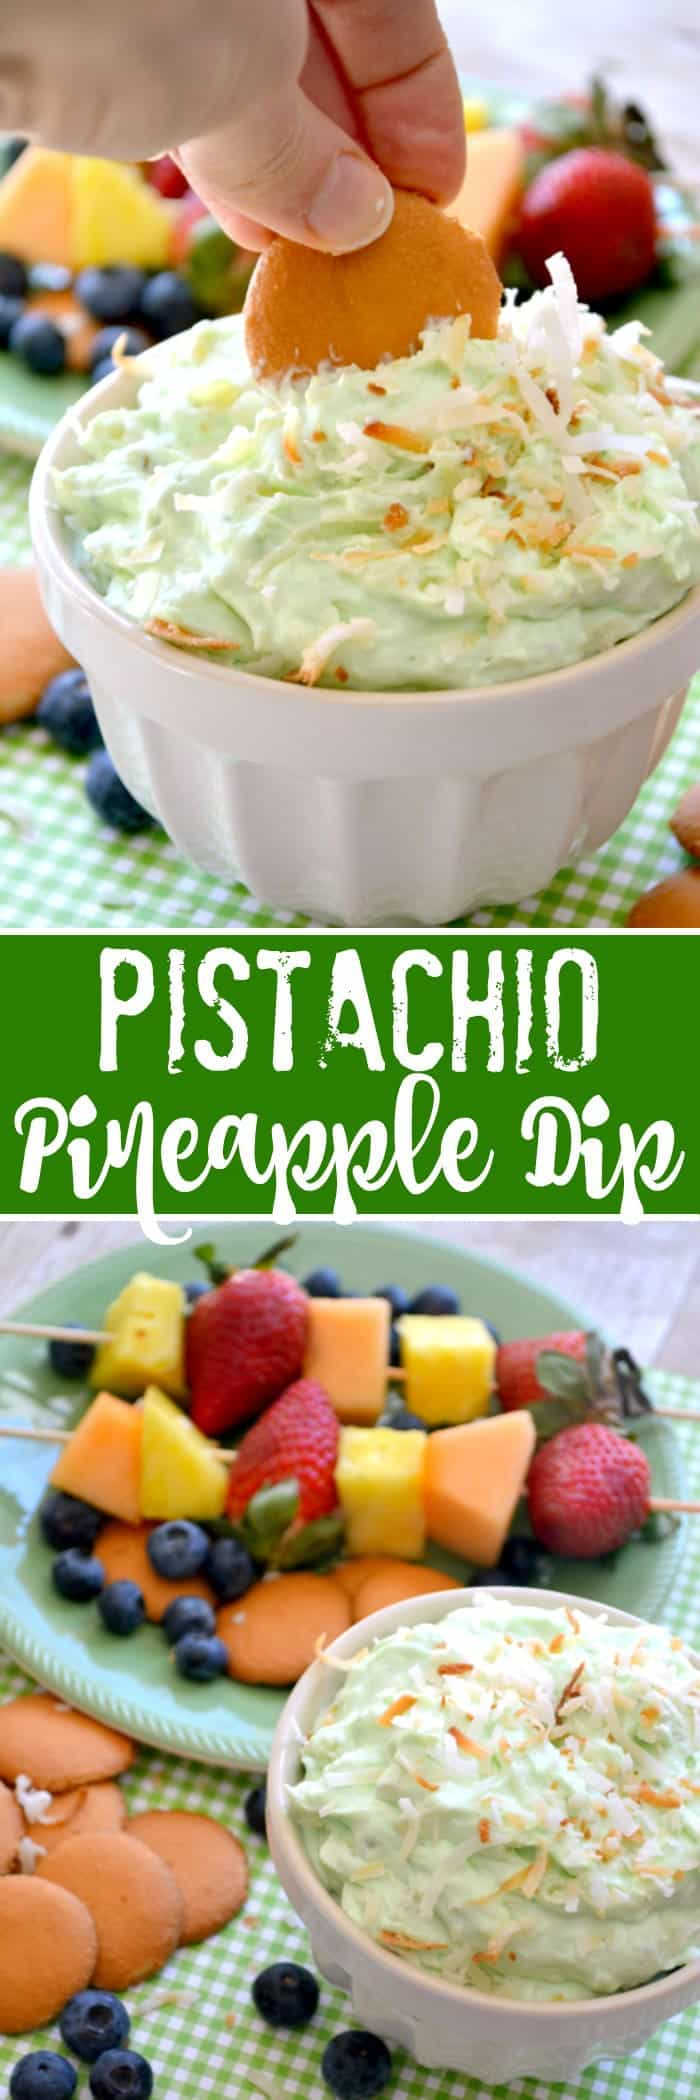 Pistachio Pineapple Dip is a dessert dip to die for! It's a deliciously sweet, creamy dip made with just 5 ingredients.